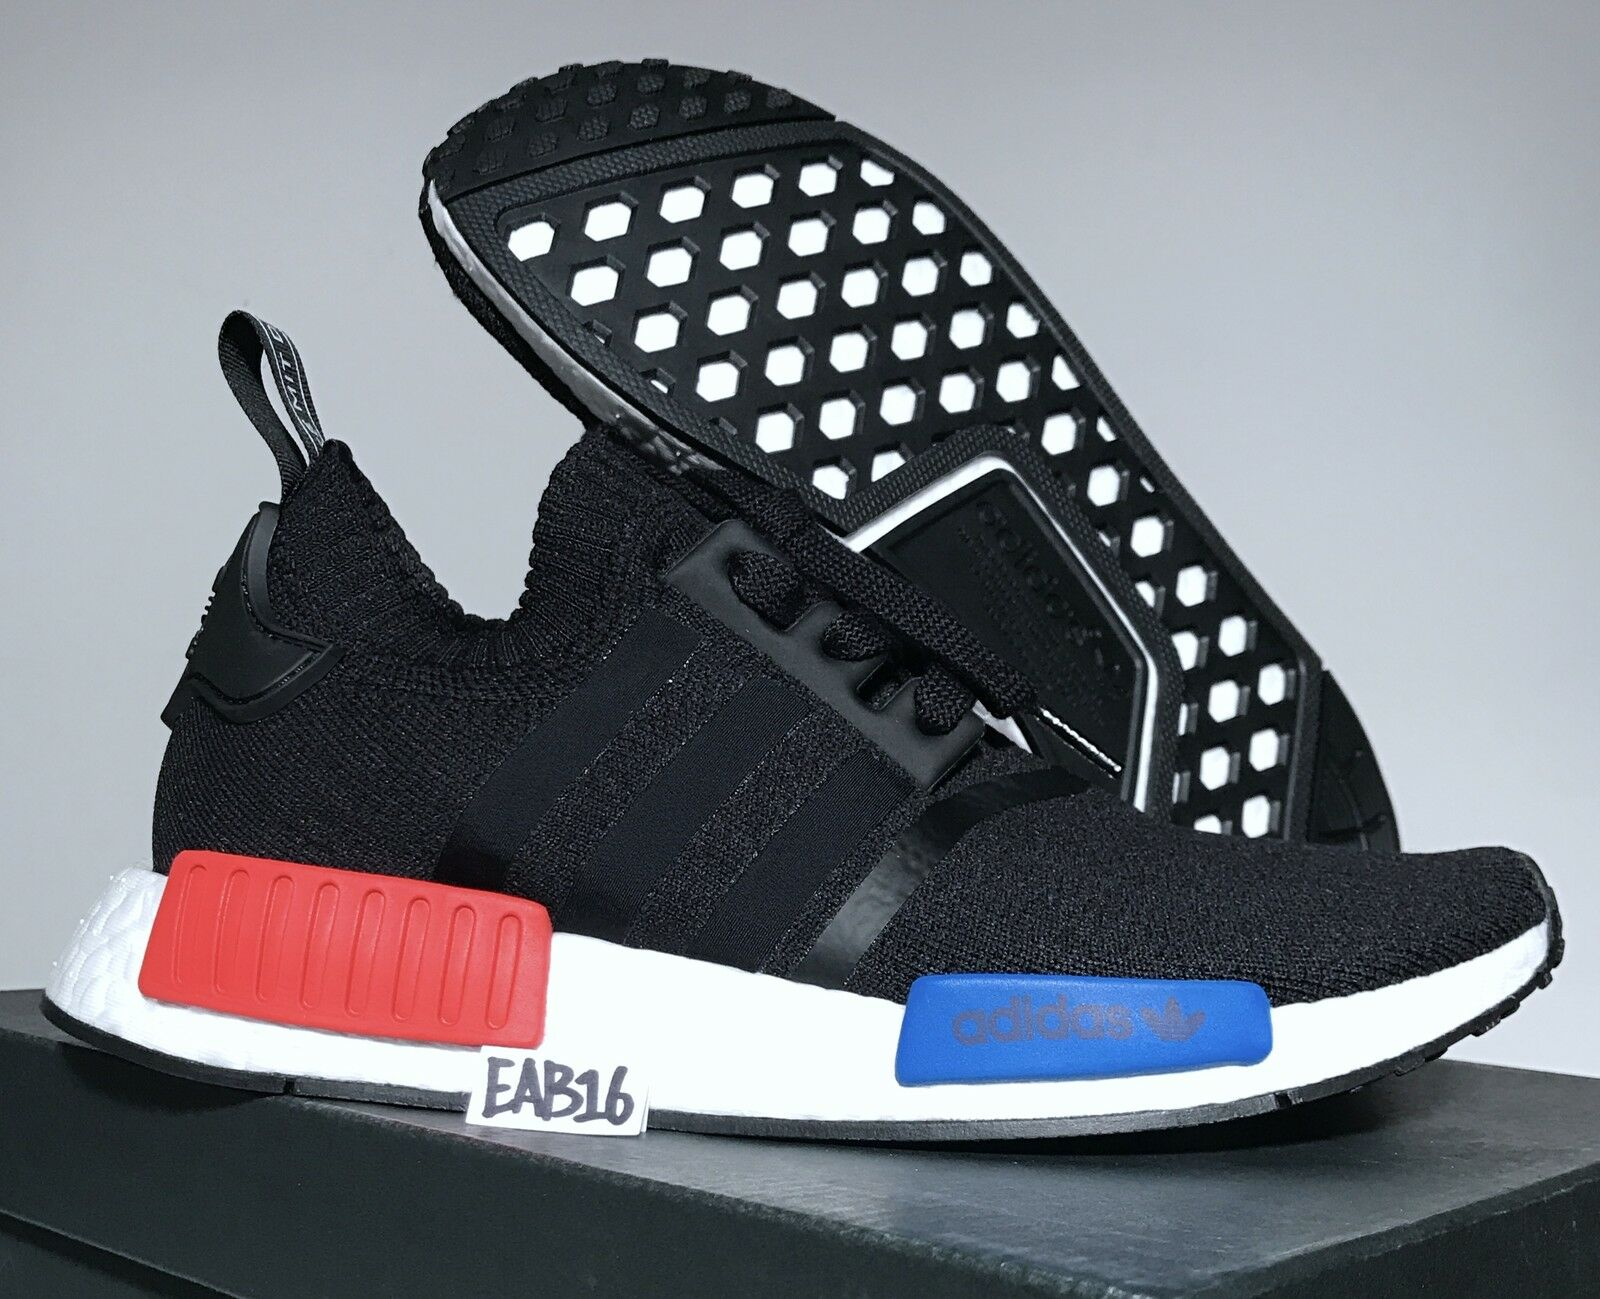 Adidas Originals NMD_R1 OG PK S79168 Black Red bluee Nomad Boost Primeknit Size